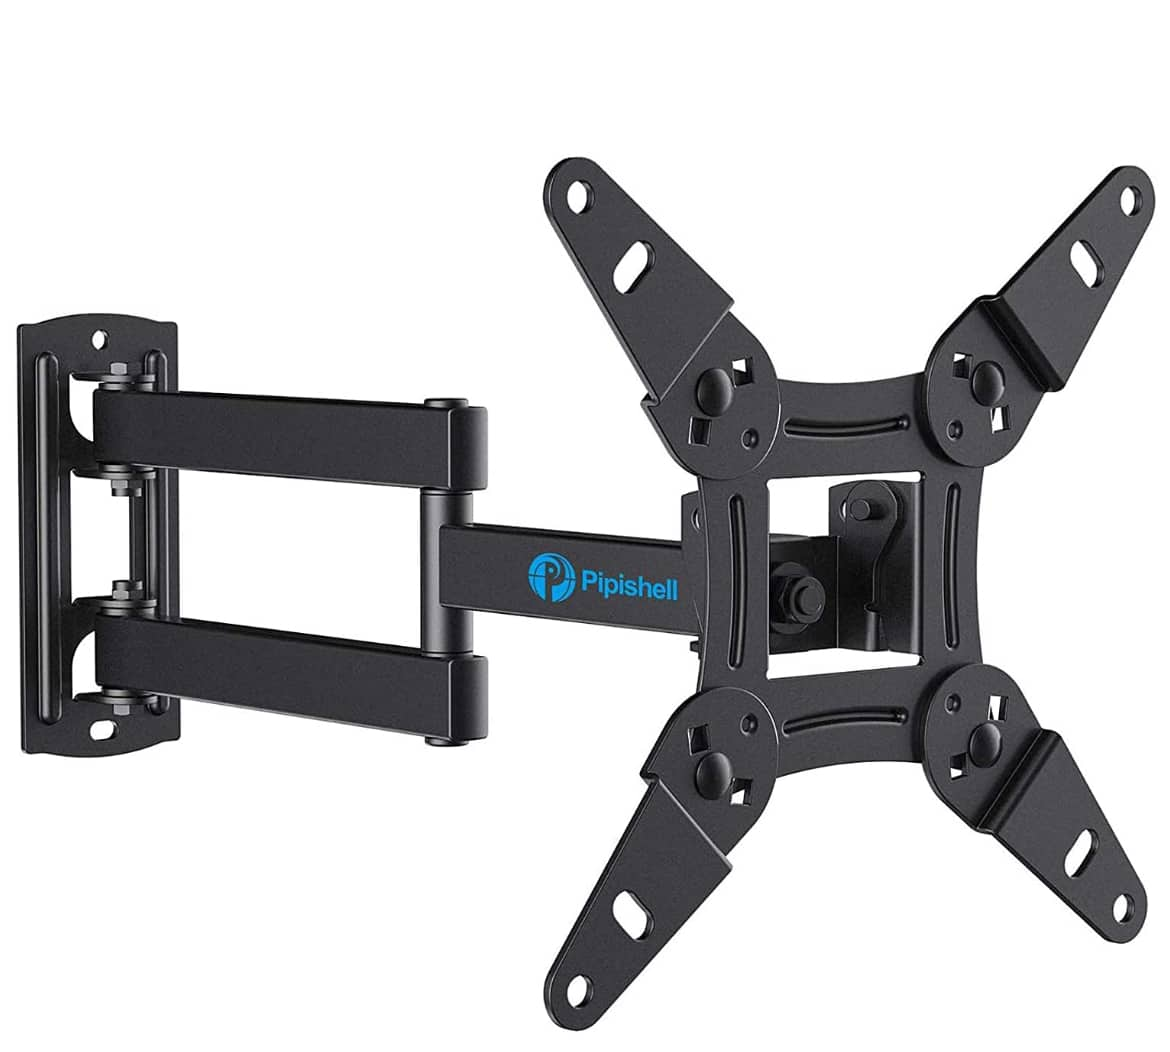 Full Motion TV Monitor Wall Mount Bracket Articulating Arms Swivels Tilts 13-42 inch TVs - 44lbs $16.99 @Amazon